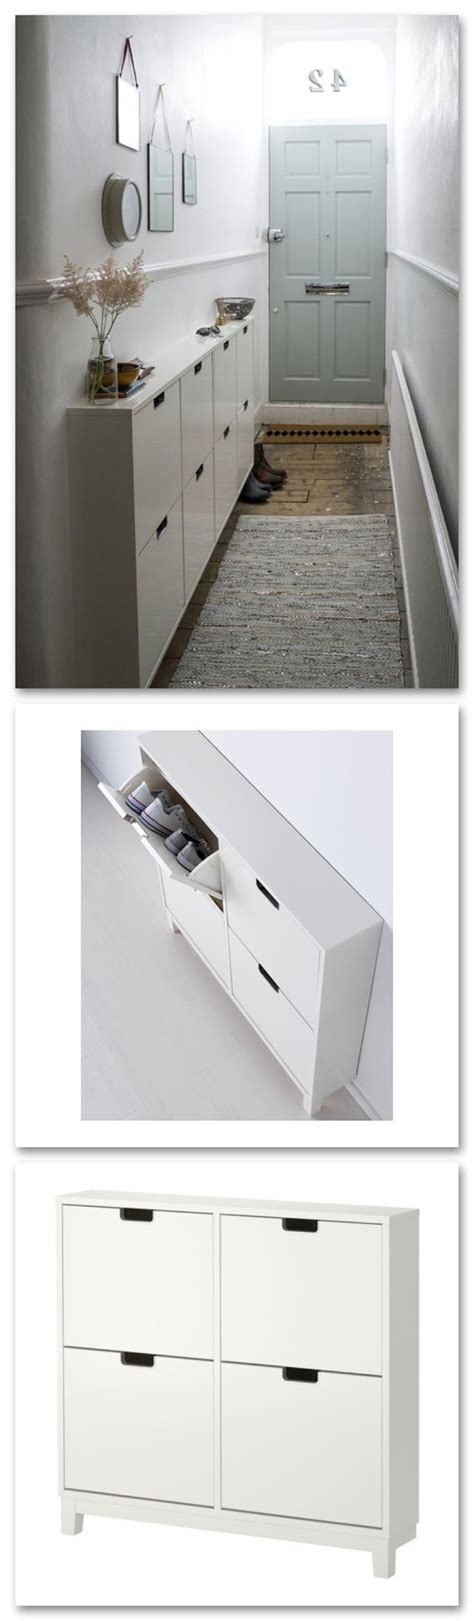 Narrow Shoe Storage Cabinet 25 Best Ideas About Narrow Living Room On Narrow Hallway Decorating Dining Room